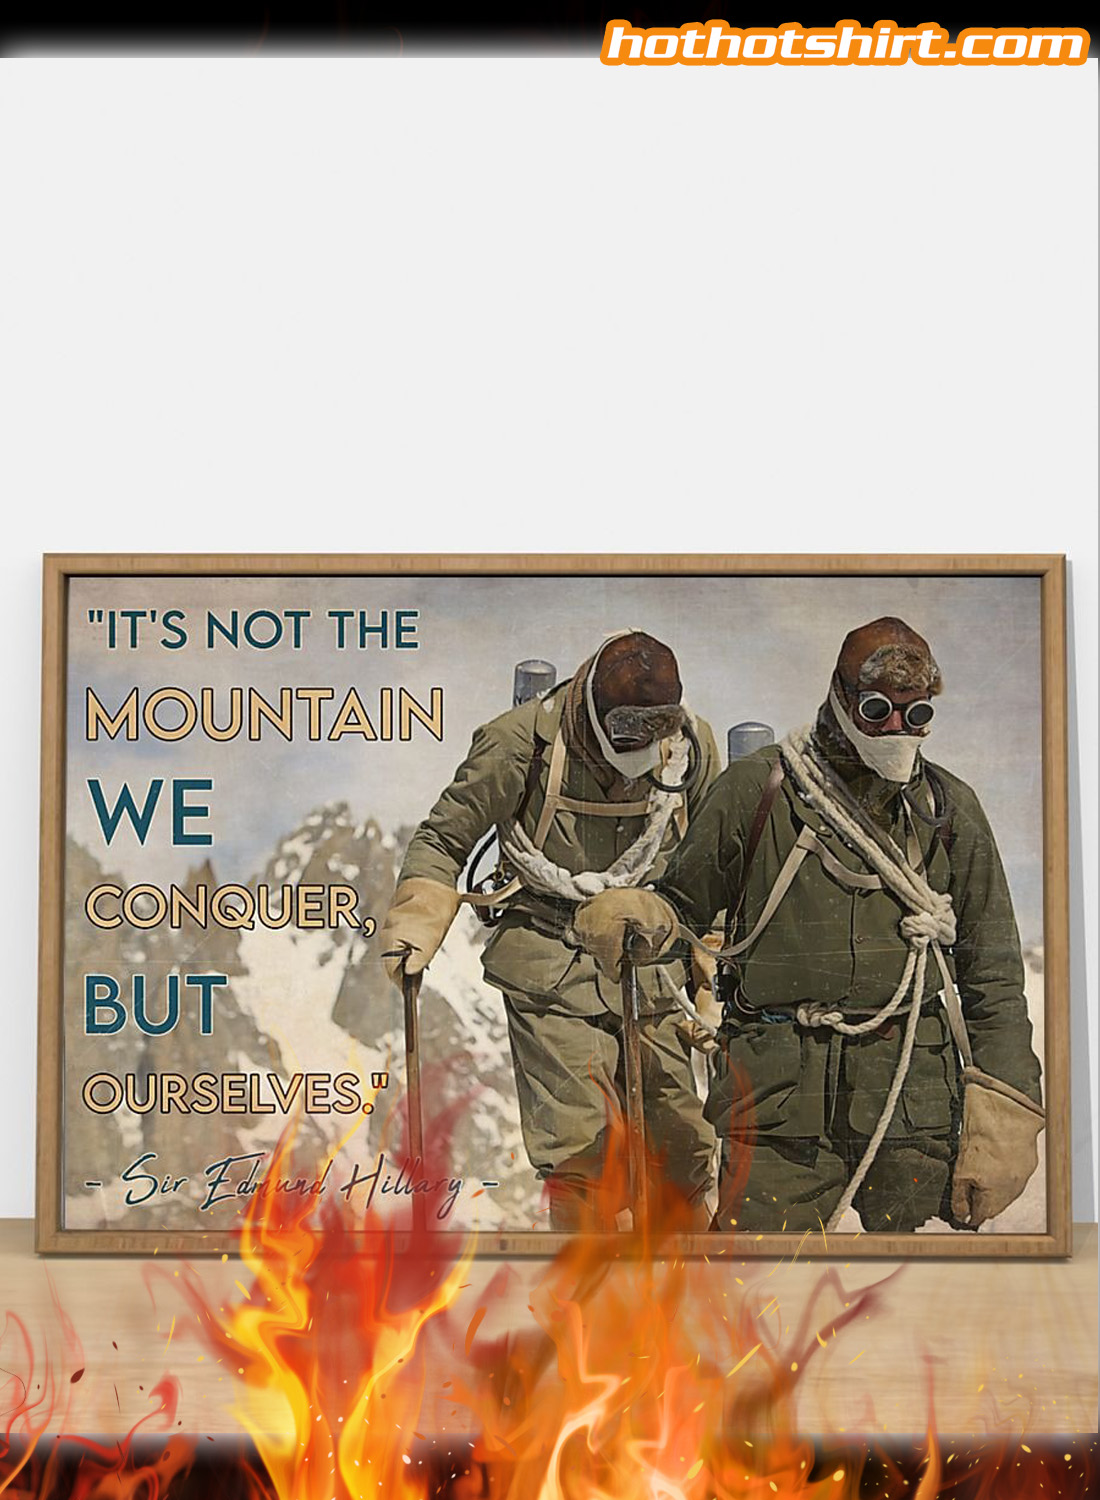 Vintage Mountaineer It's not the mountain we conquer but ourselves poster 1